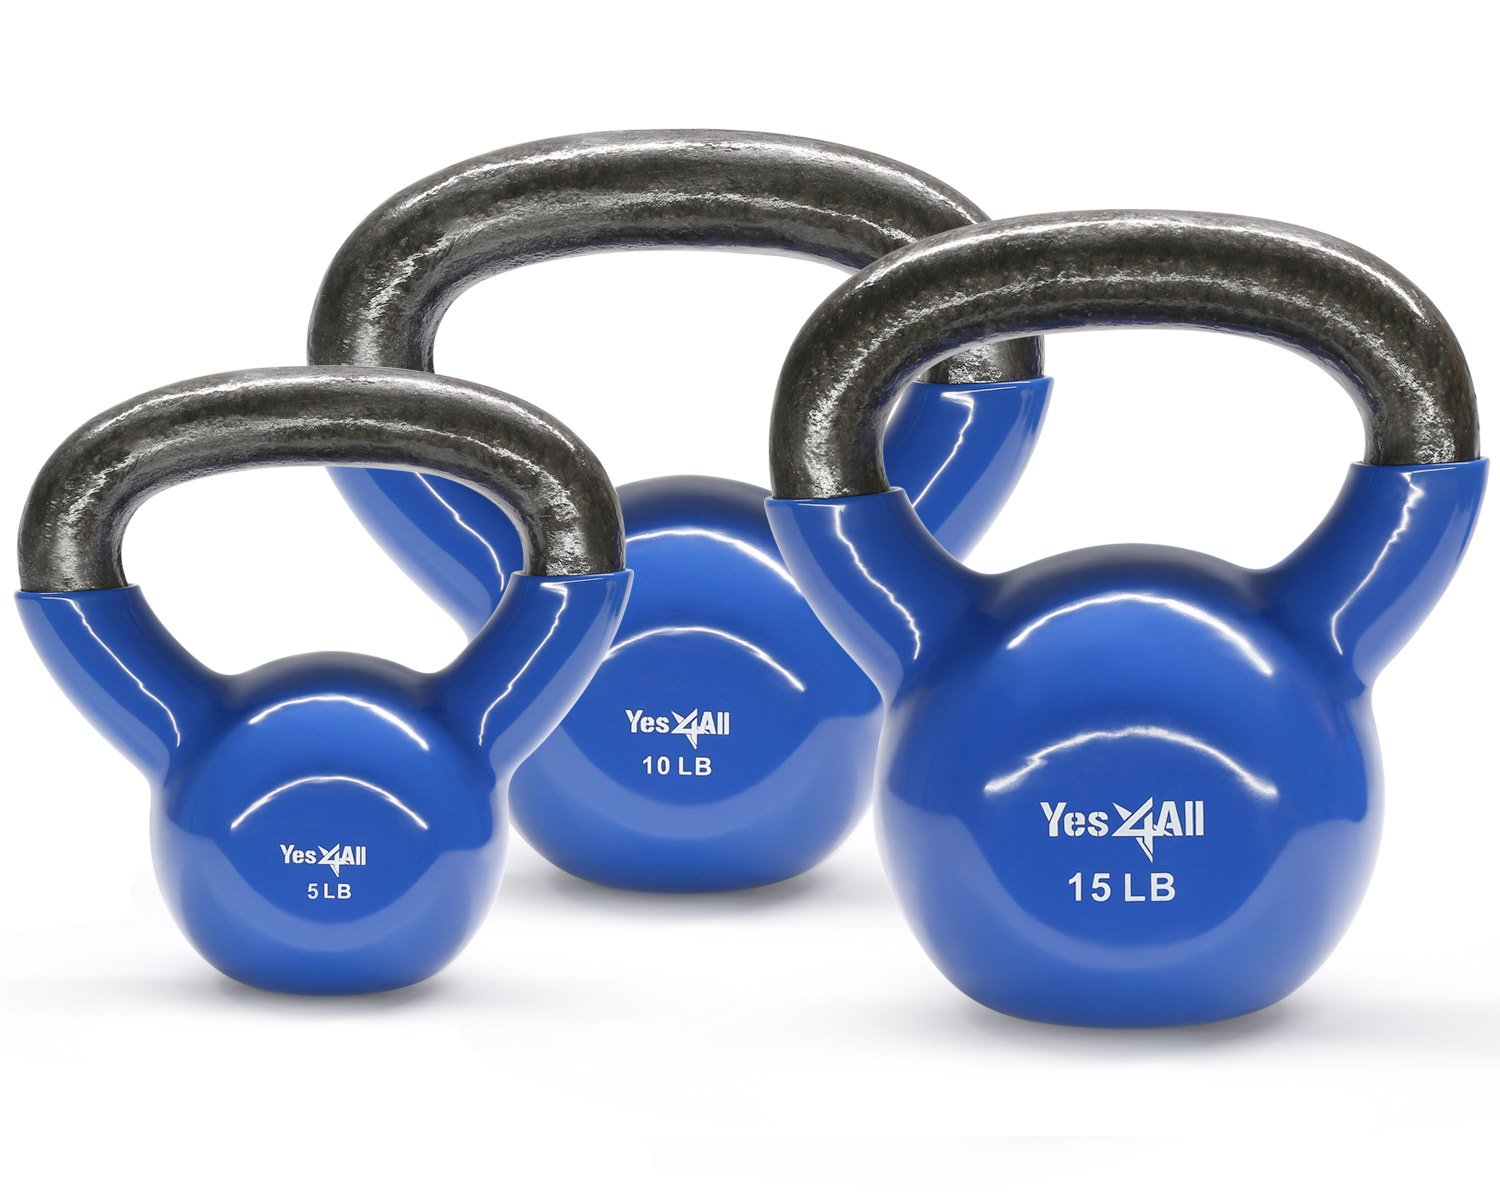 Yes4All Combo Vinyl Coated Kettlebell Weight Sets – Great for Full Body Workout and Strength Training – Vinyl Kettlebells 5 10 15 lbs